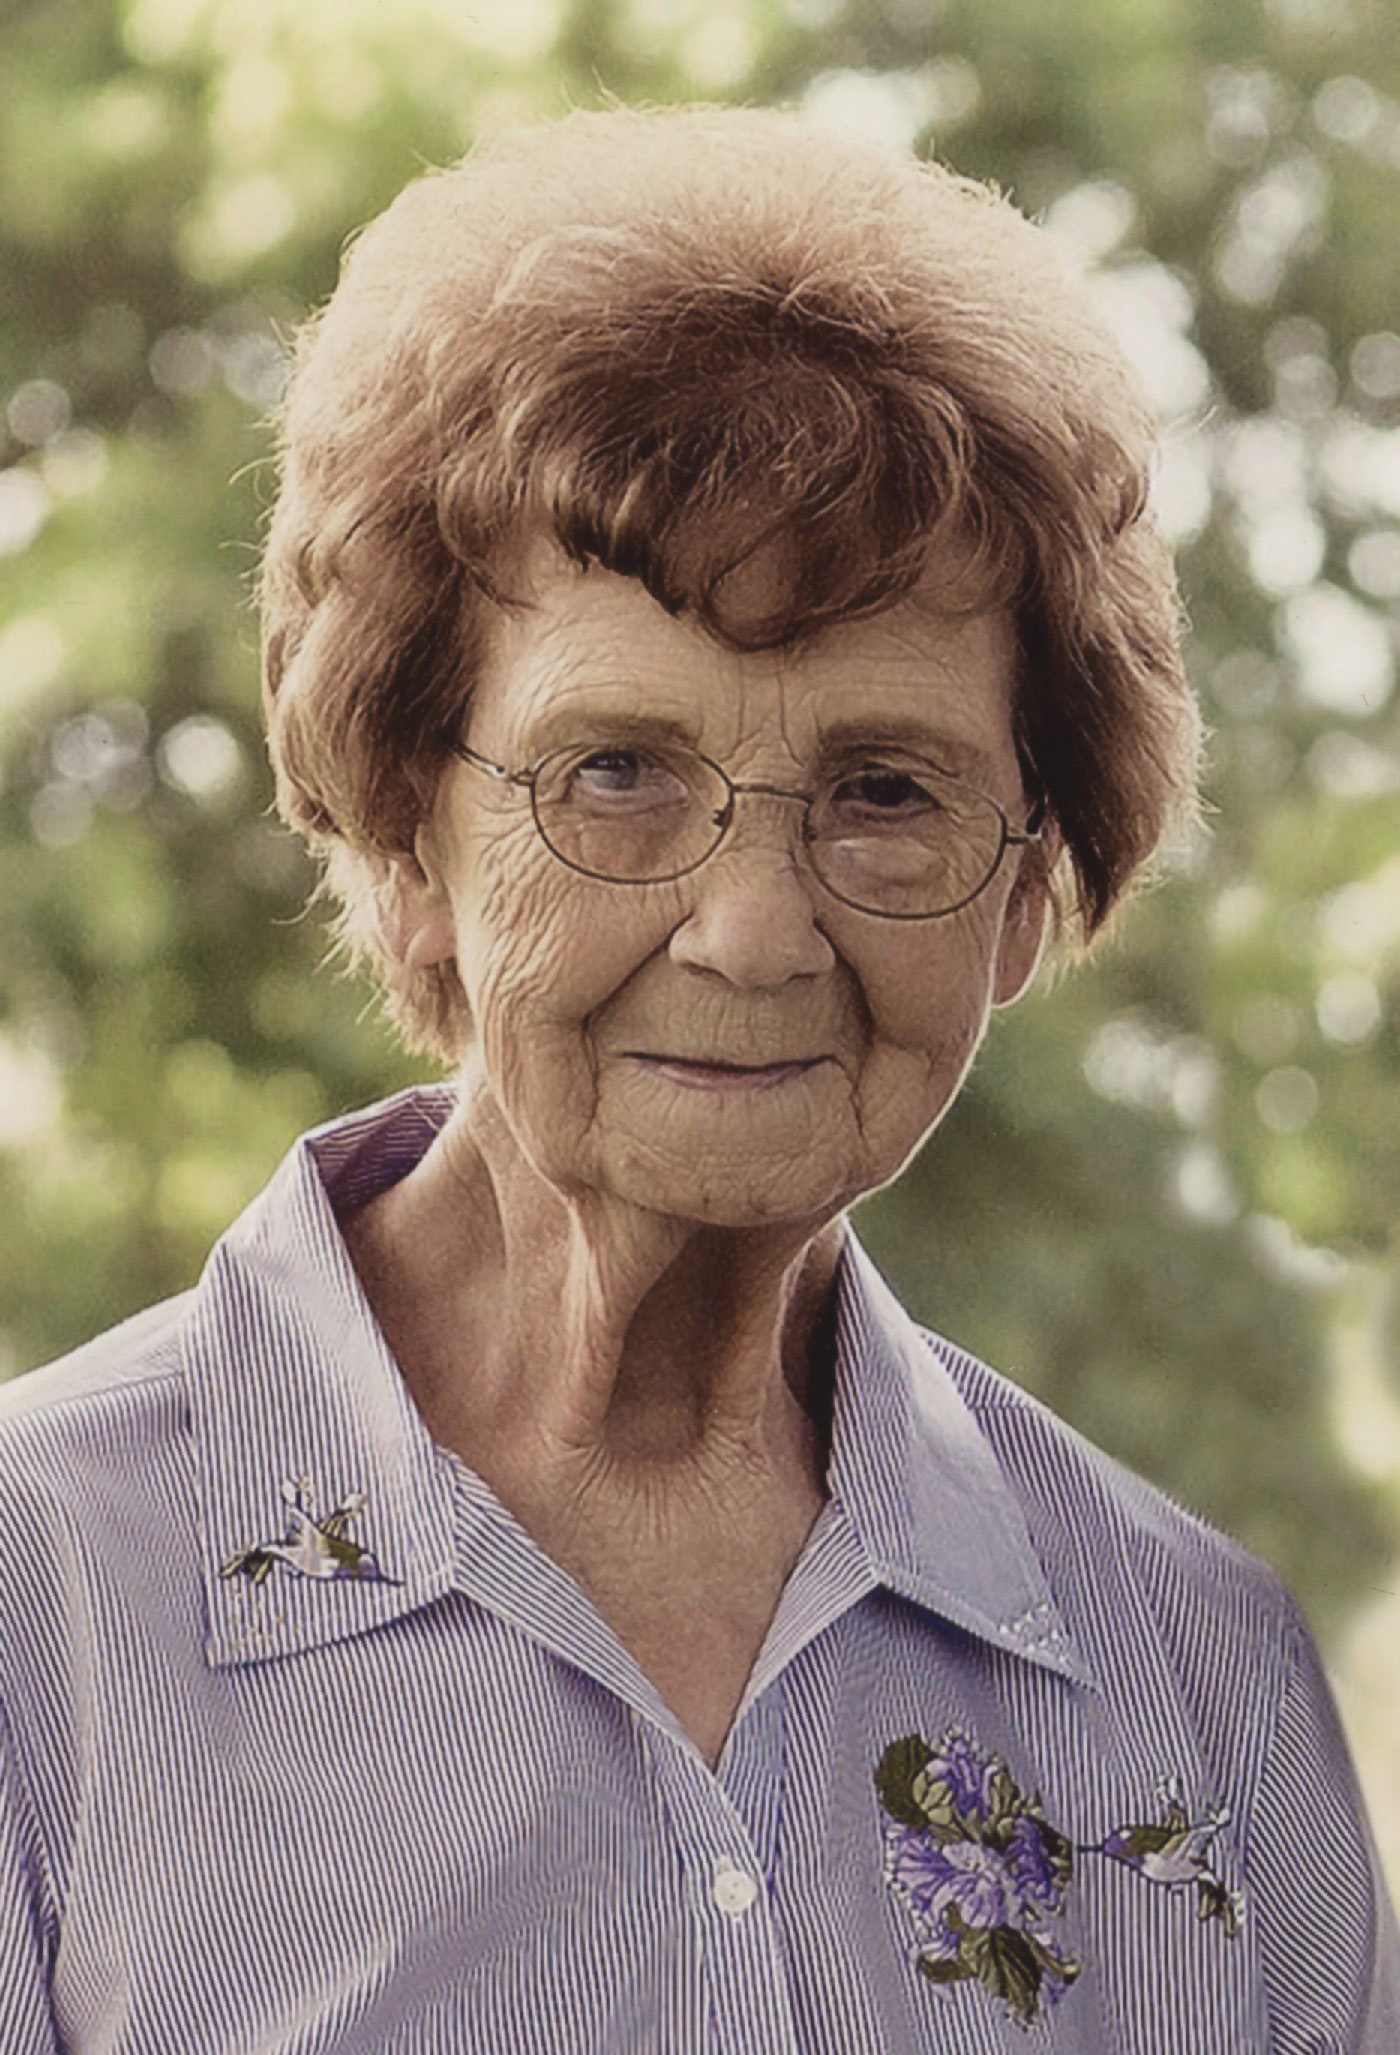 Delores J. Strotman, age 84, of Dubois